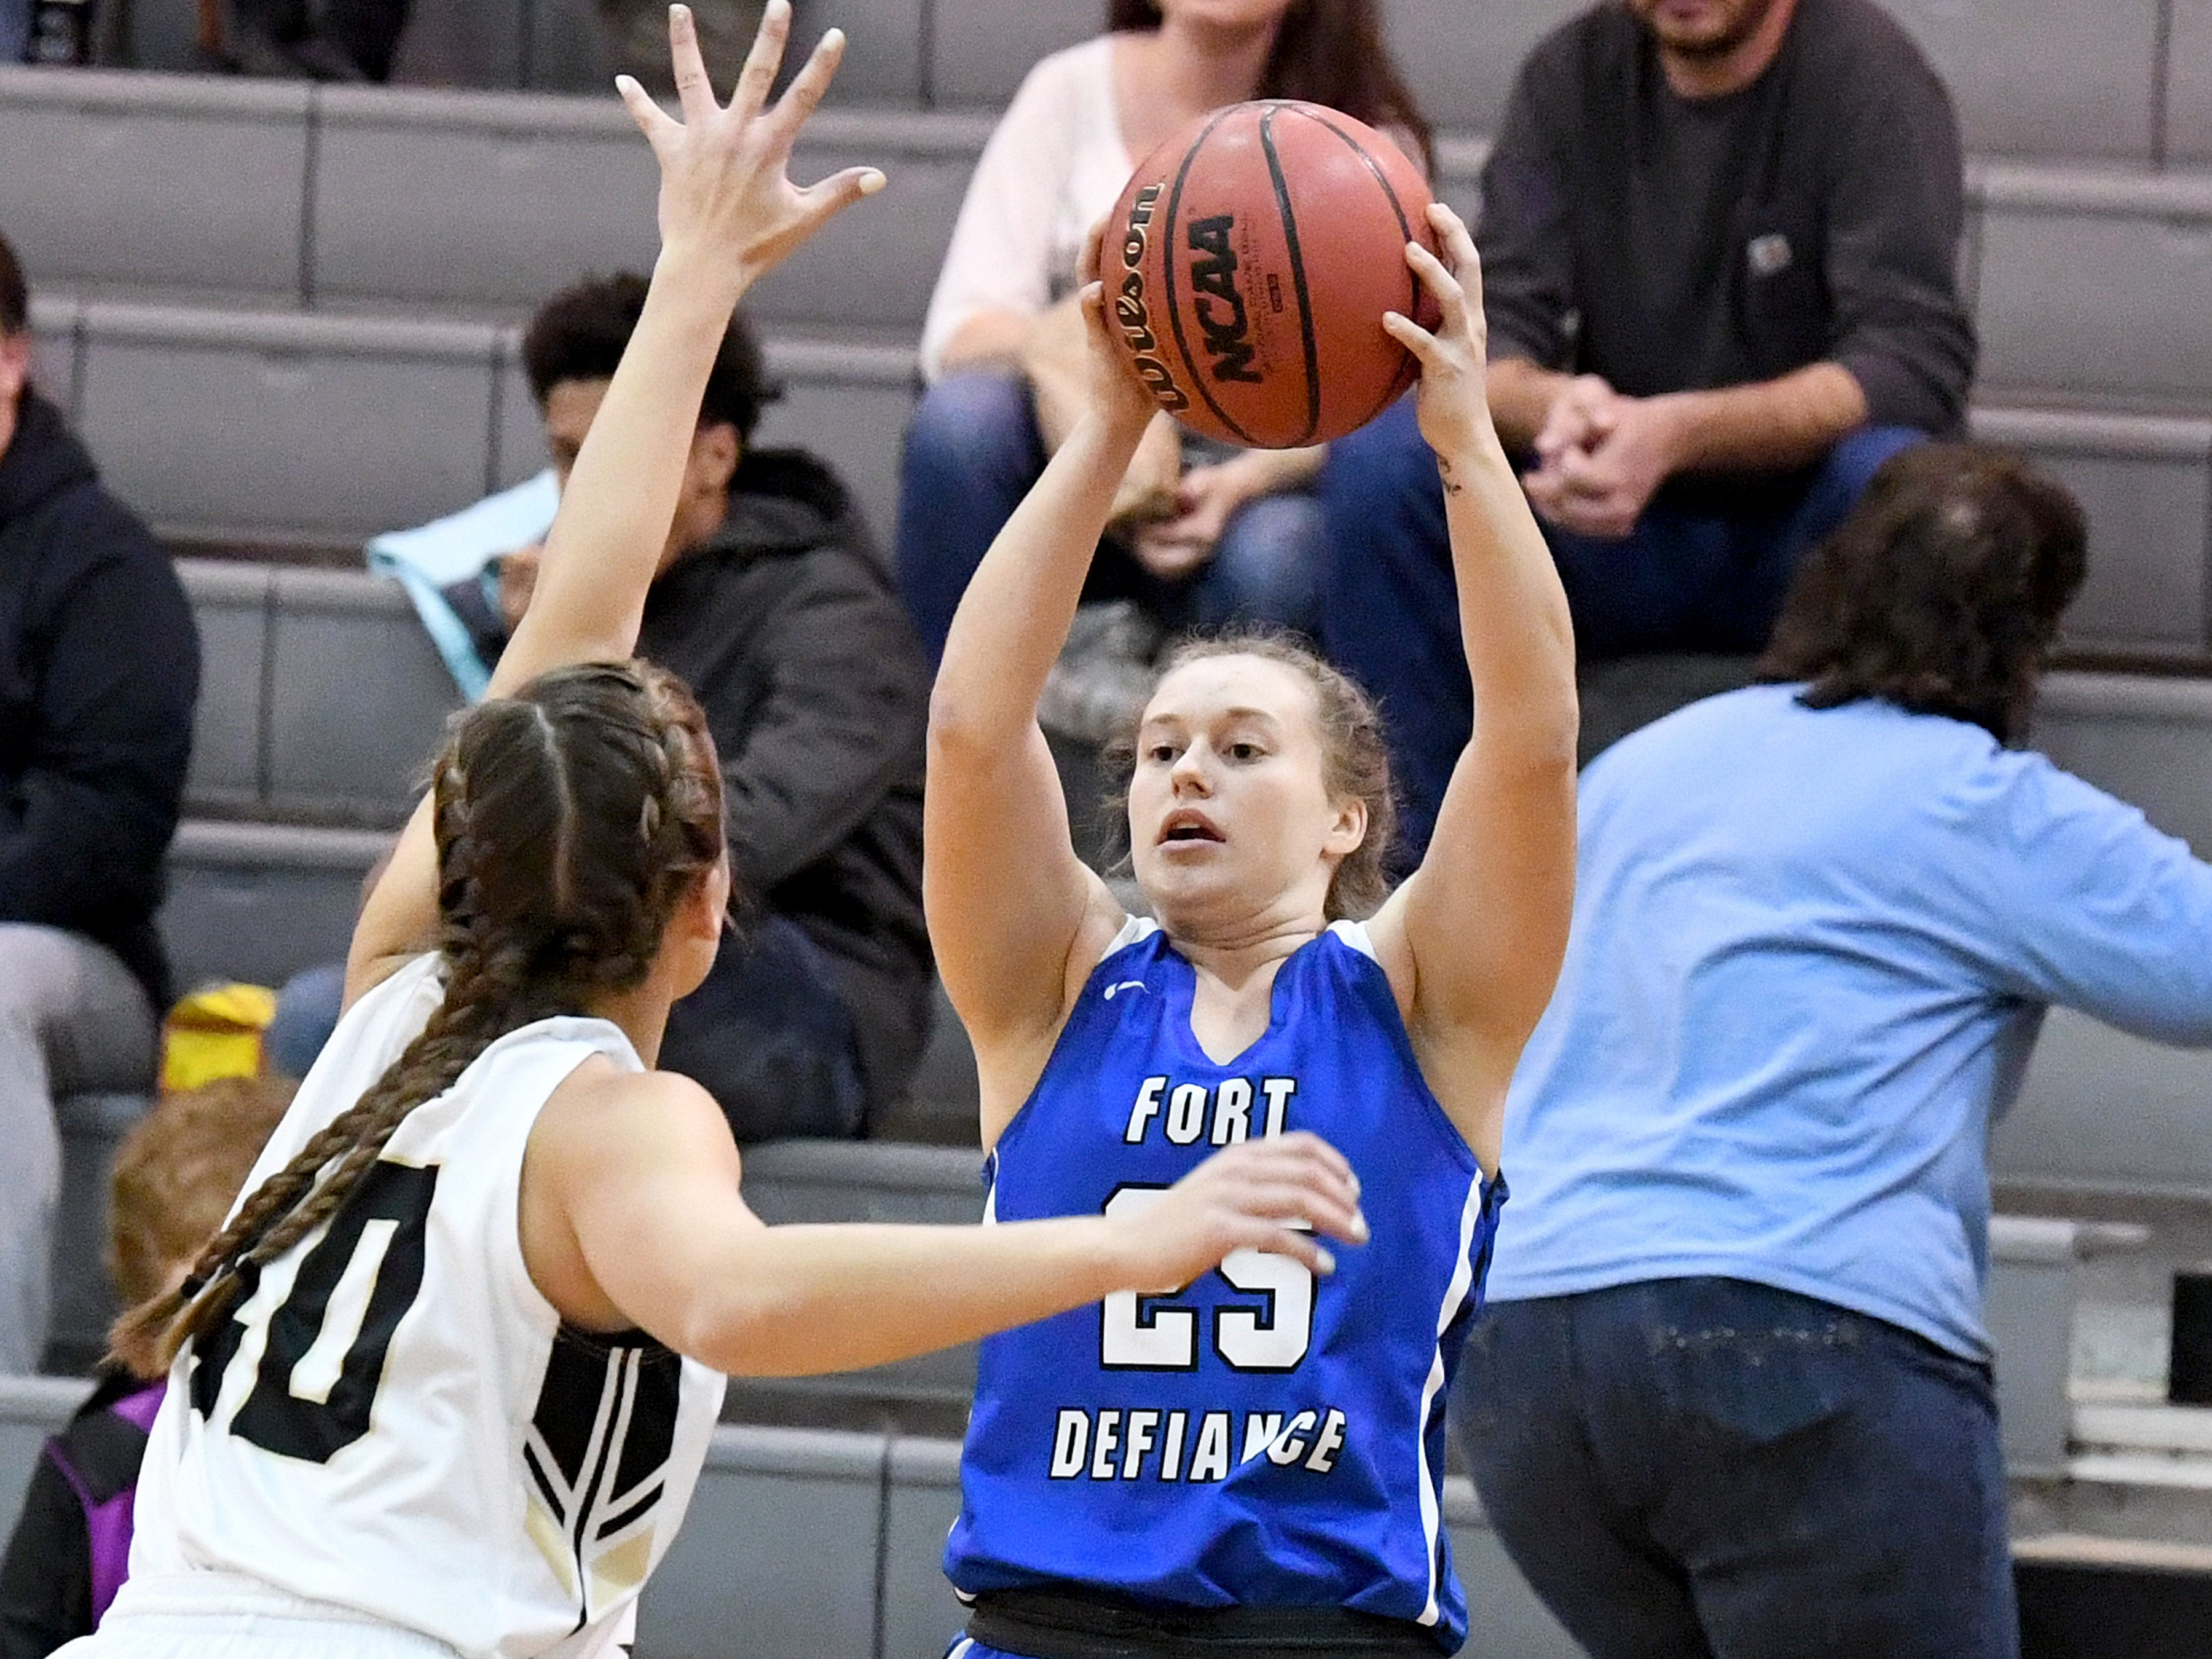 Fort Defiance's Meredith Lloyd protects the ball and looks to pass during a game played in Swoope on Wednesday, Dec. 5, 2018.